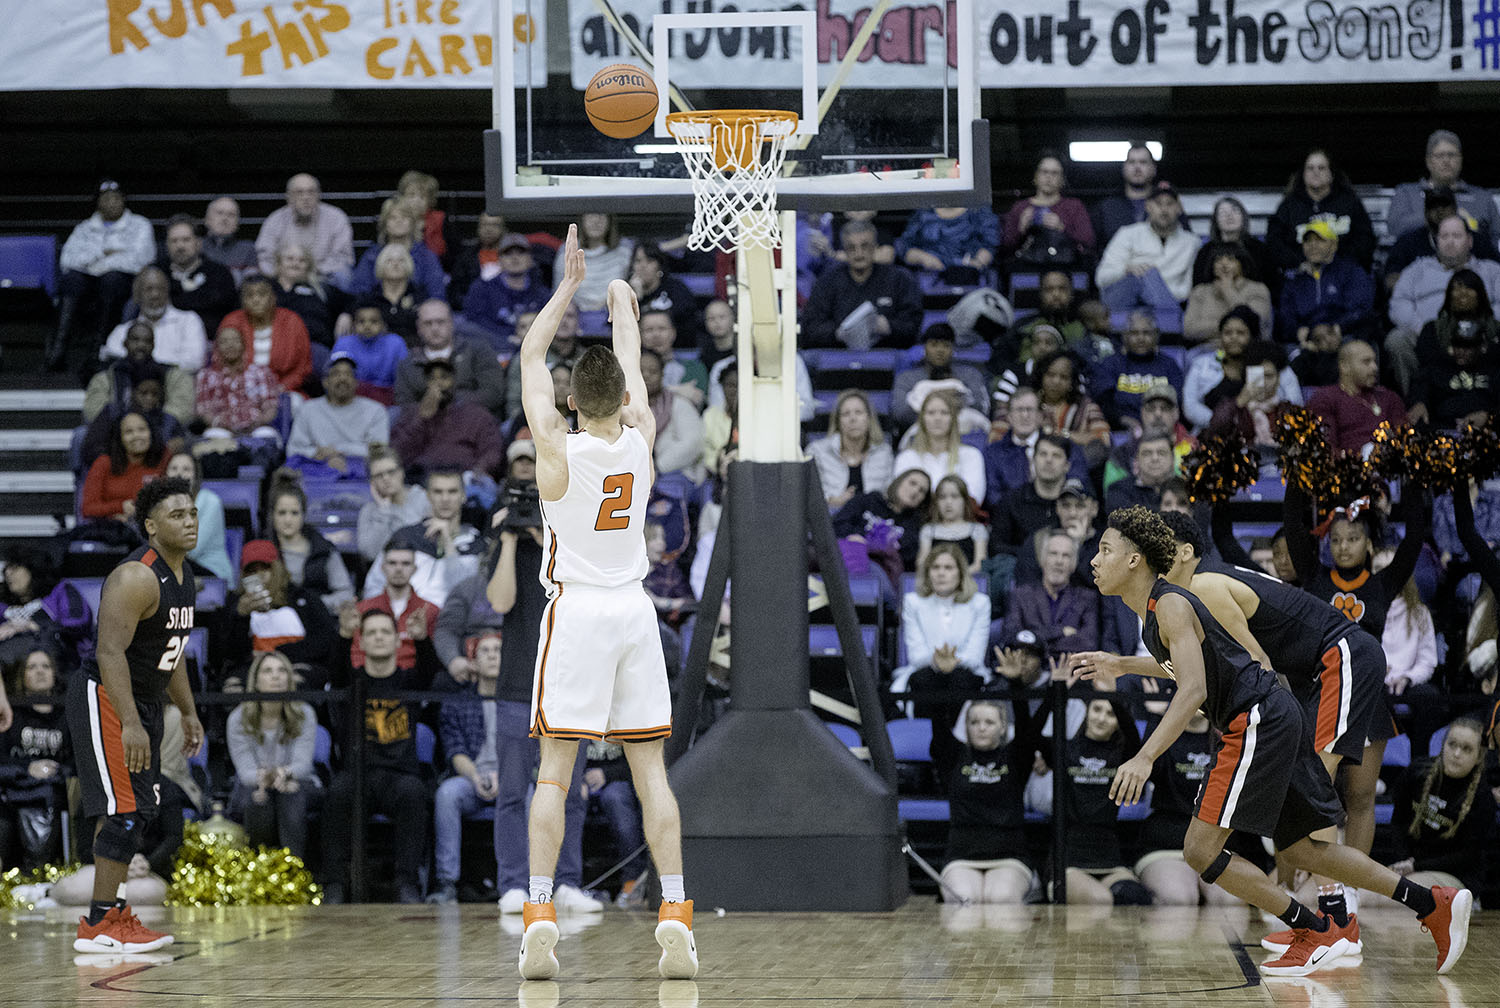 Lanphier's Jaden Snodgrass sinks a foul shot to extend the Lions lead to two against Springfield in the final seconds of the Boys City Tournament at the Bank of Springfield Center Friday, Jan. 18, 2019.  [Ted Schurter/The State Journal-Register]